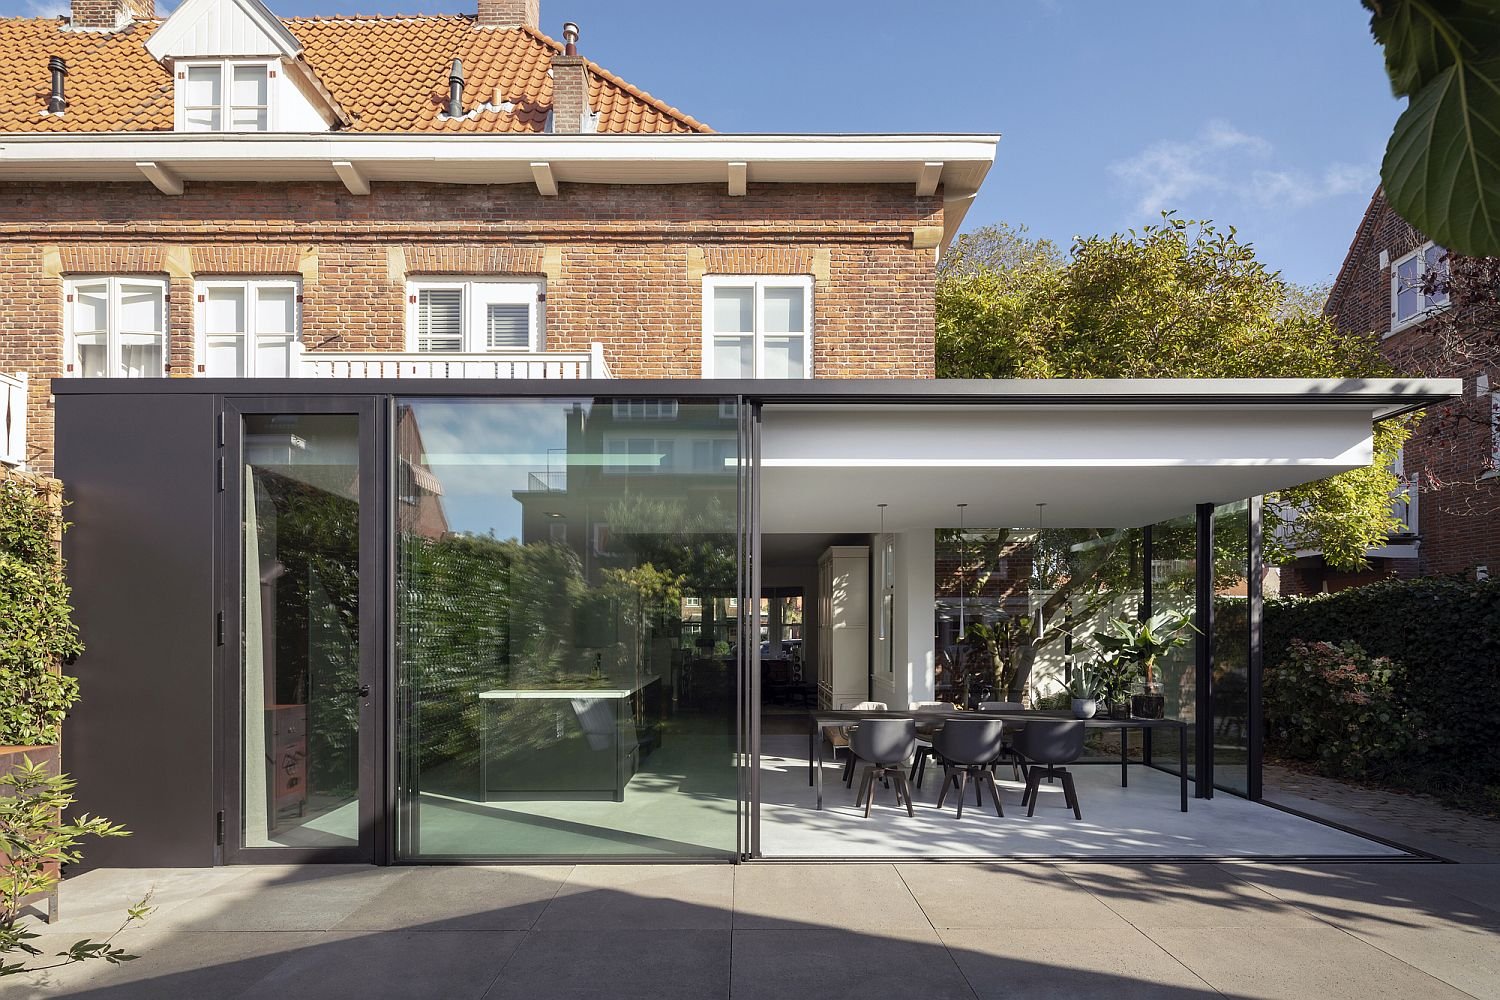 Old brick house in Netherlands with modern glass and concrete extension